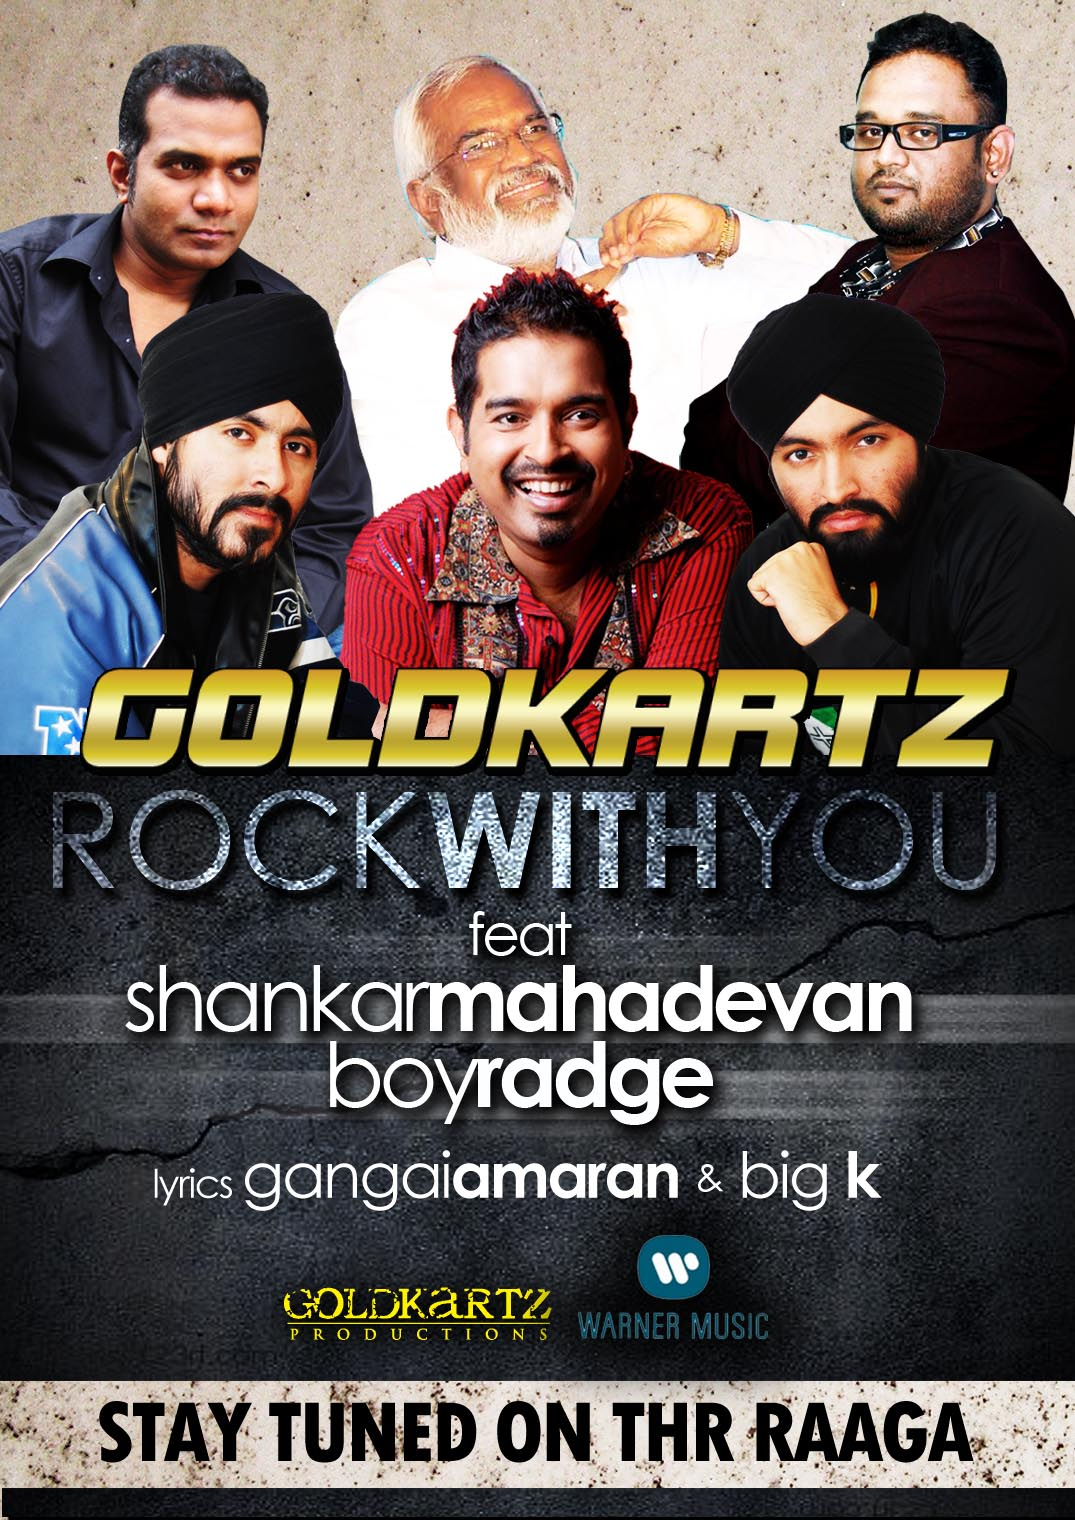 goldkartz rock with you